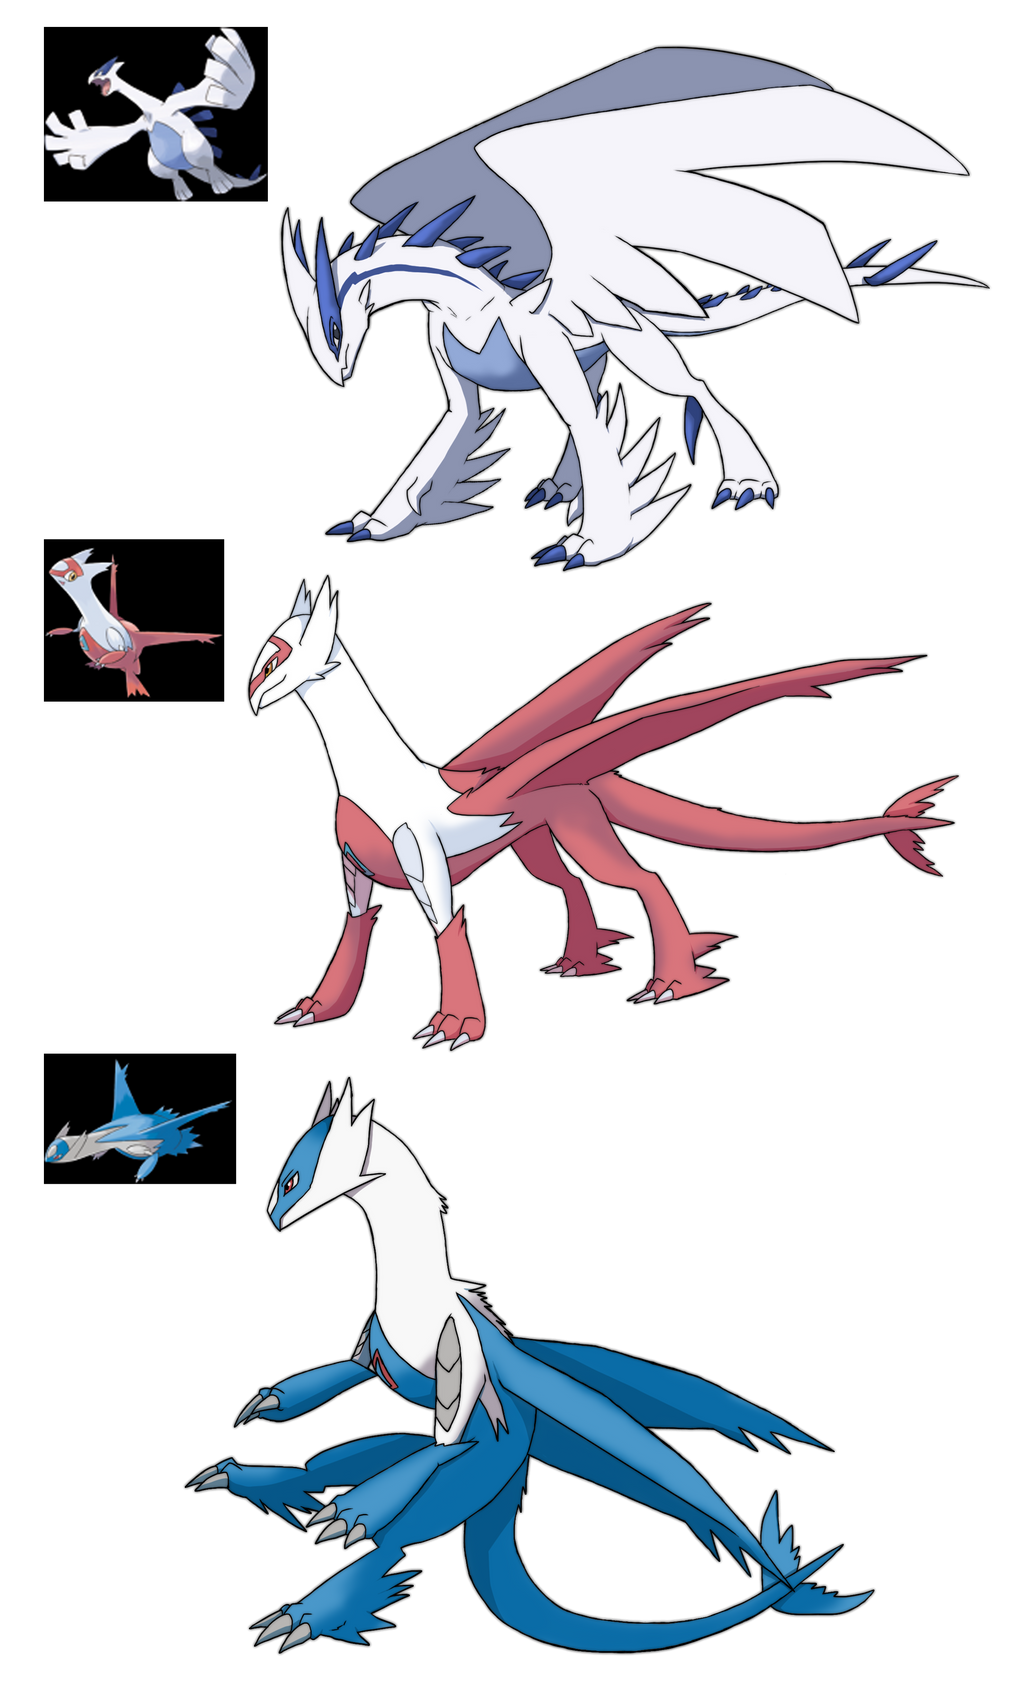 Custom Dragons Lugia Latias Latios by Eternity9 on DeviantArt